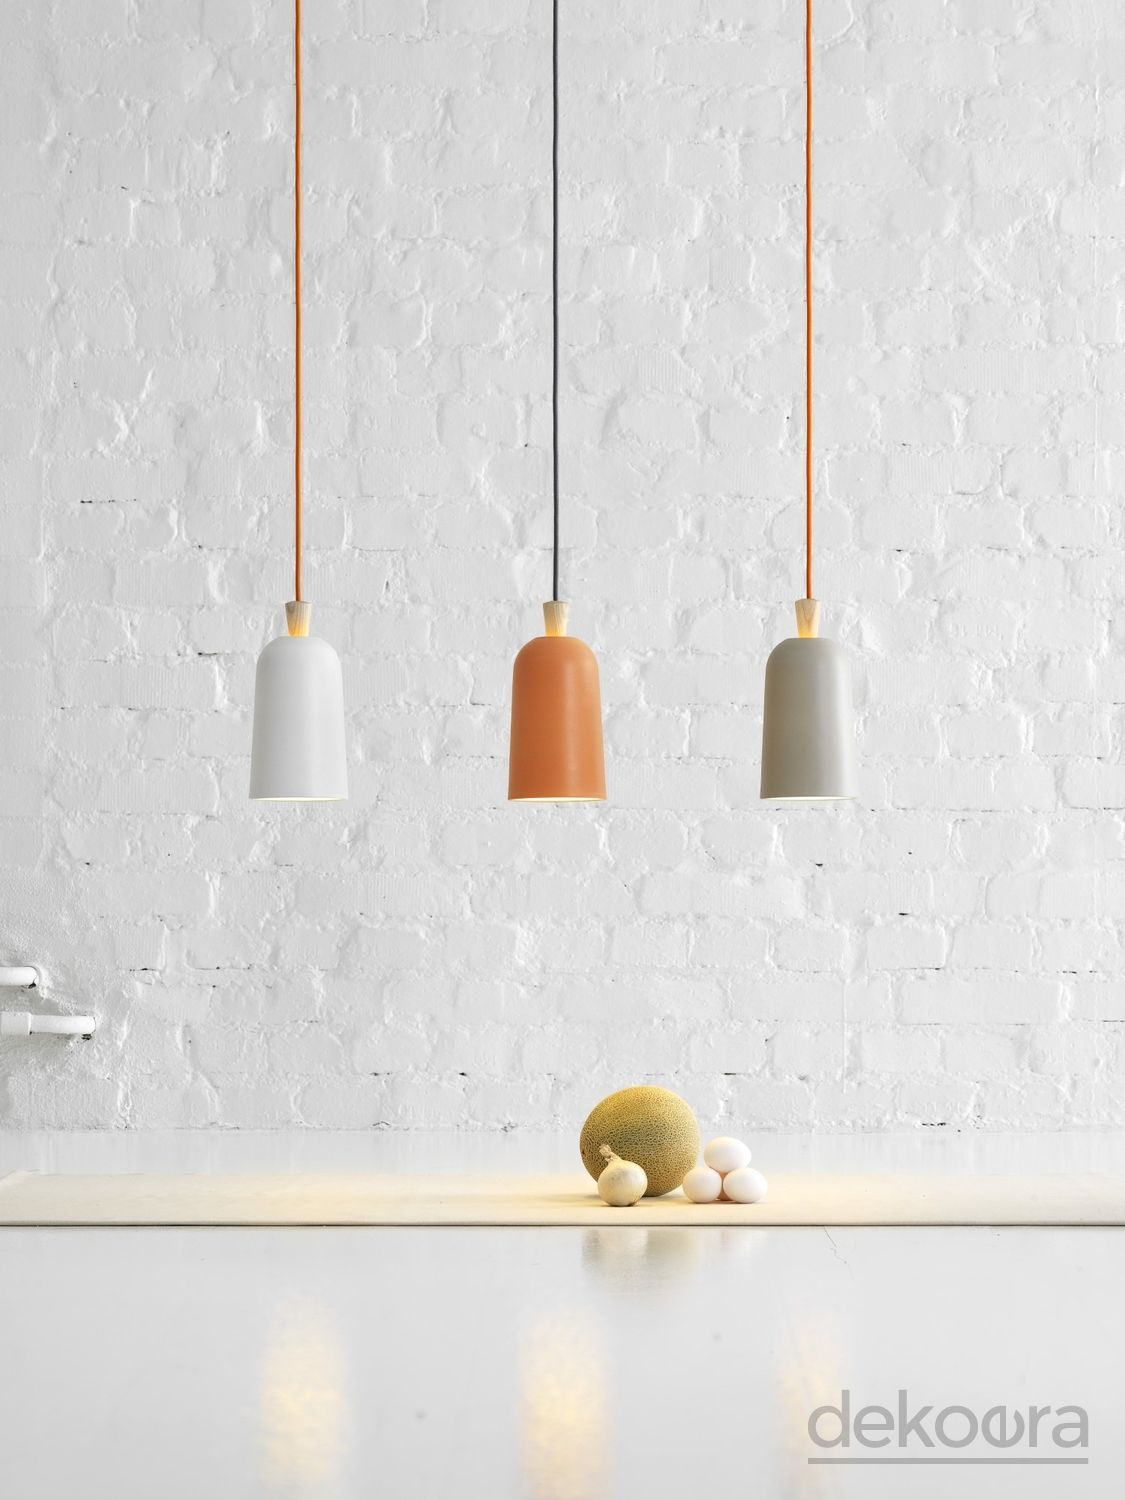 Soft porcelain pendant lamp with a wooden fuse ready to